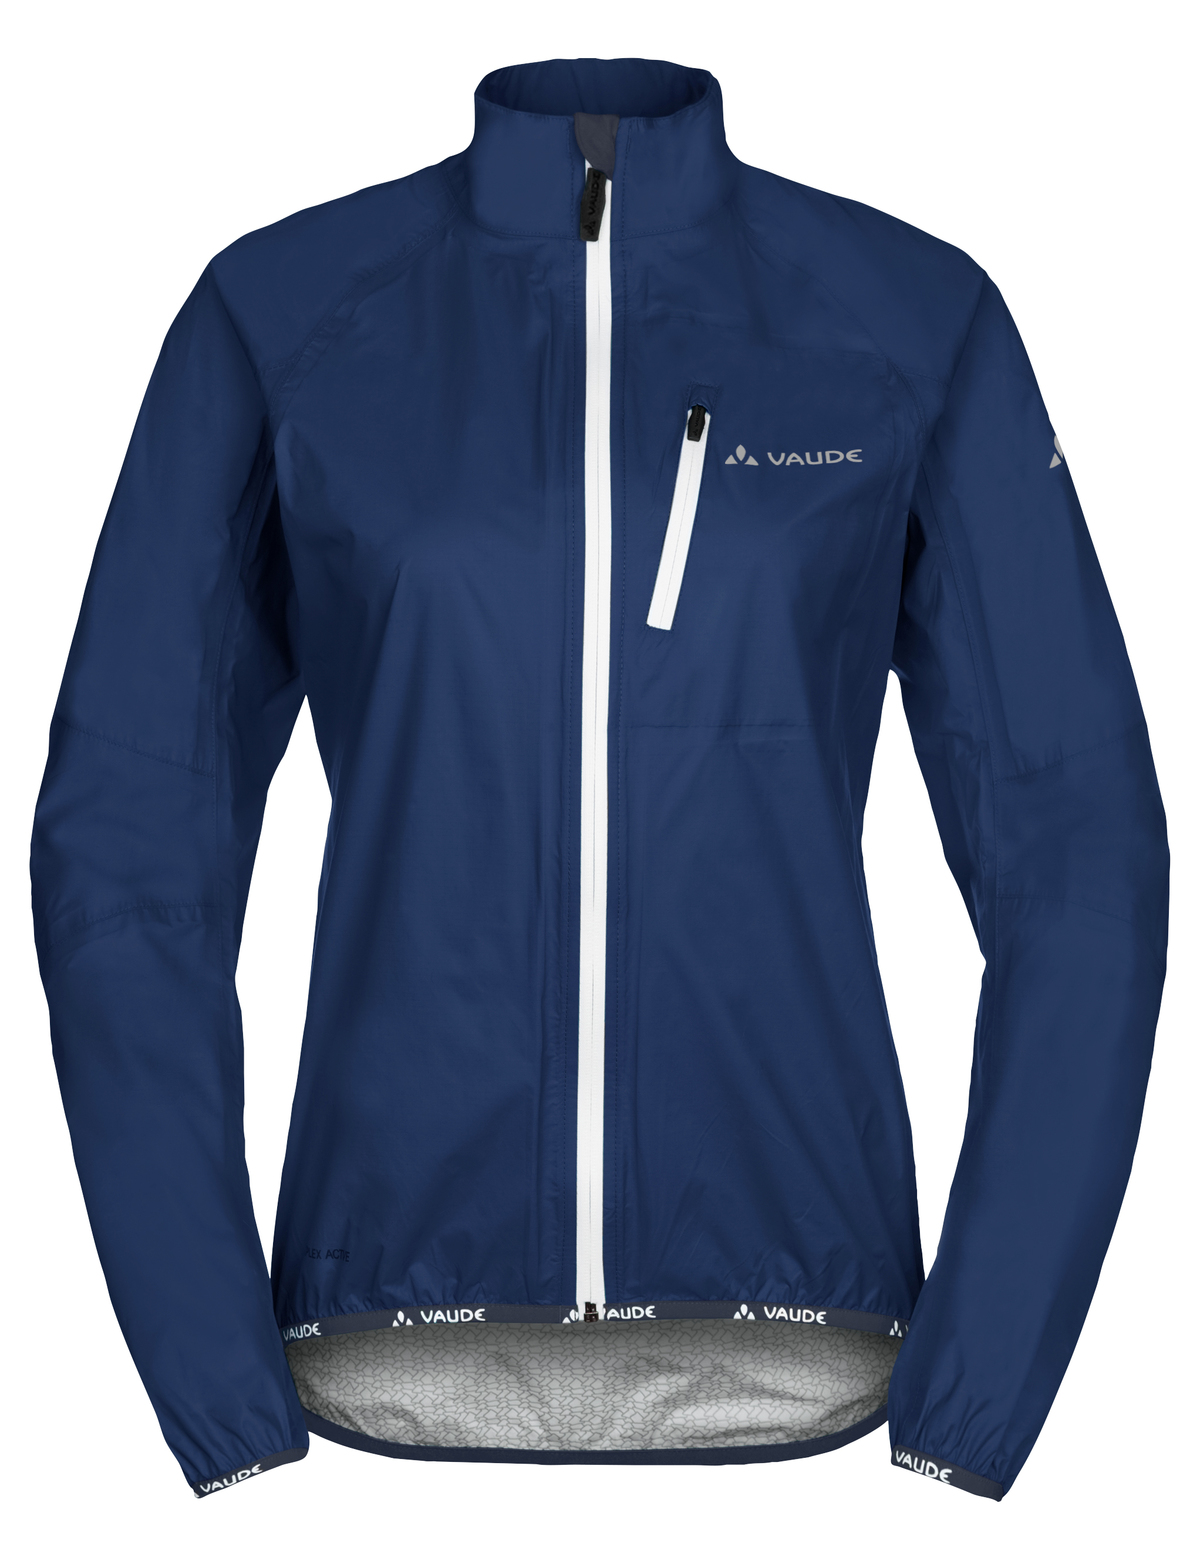 VAUDE Women´s Drop Jacket III sailor blue Größe 42 - VAUDE Women´s Drop Jacket III sailor blue Größe 42